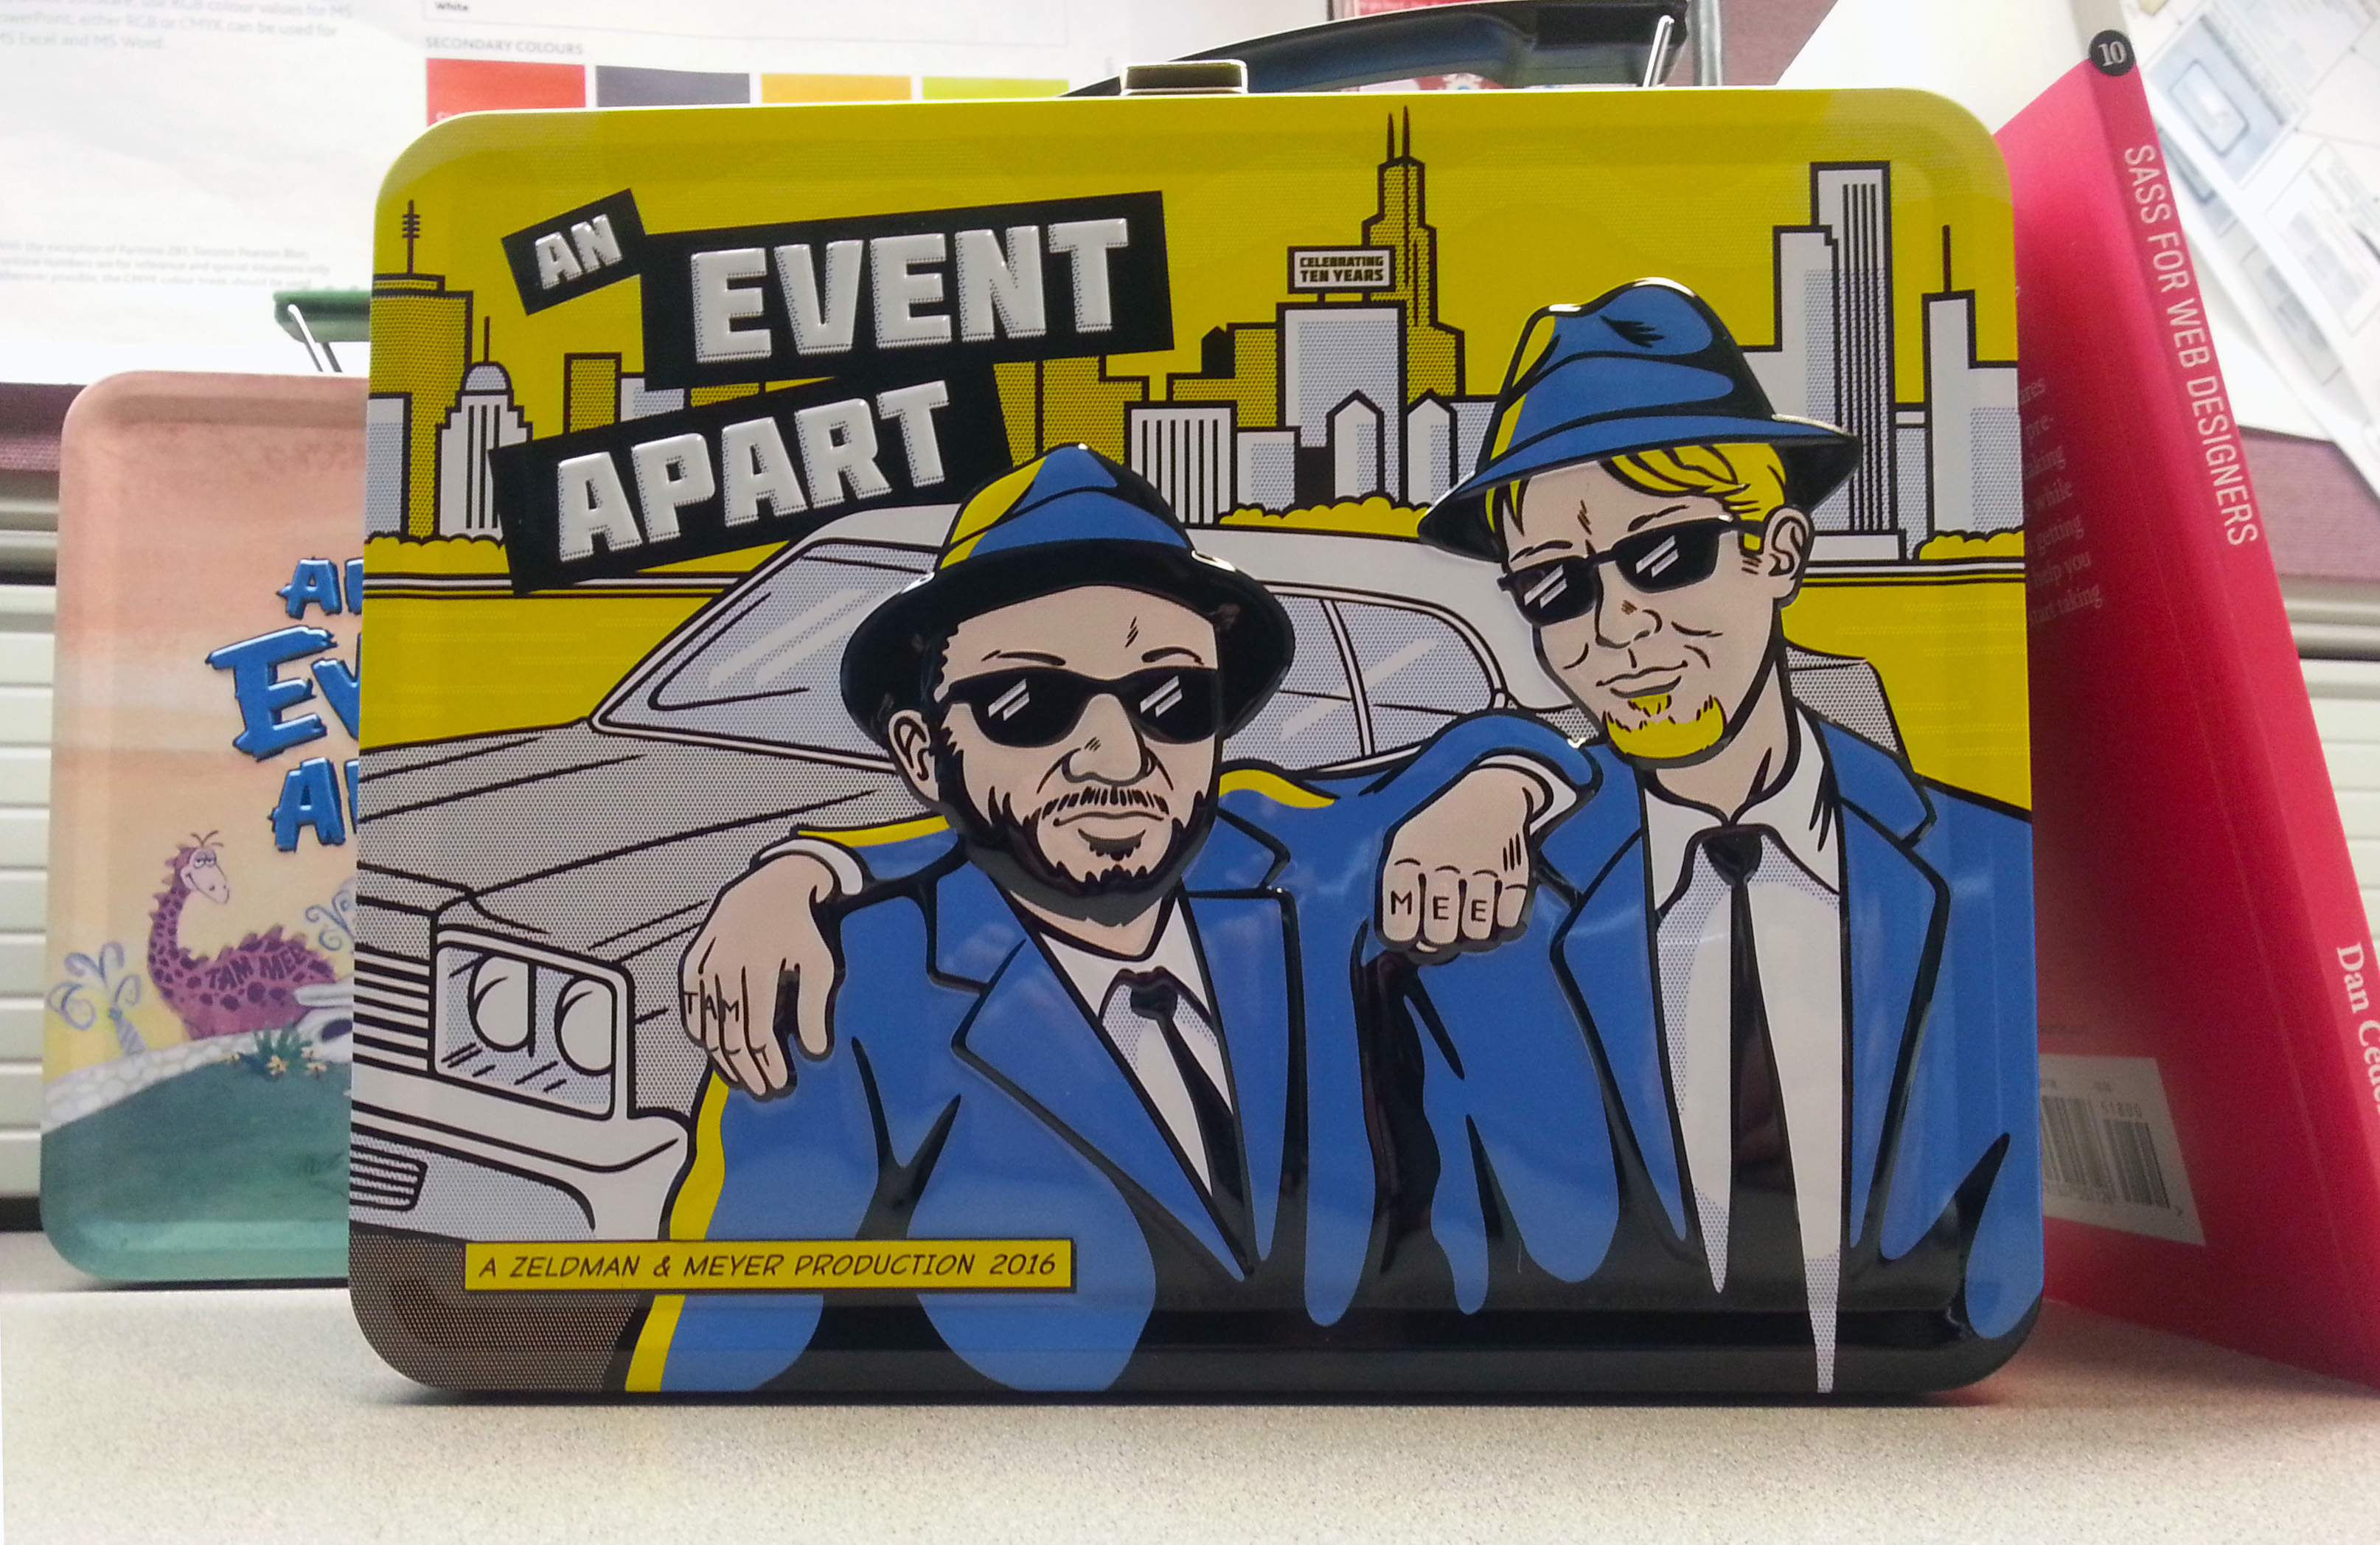 The 2016 An Event Apart lunchbox.